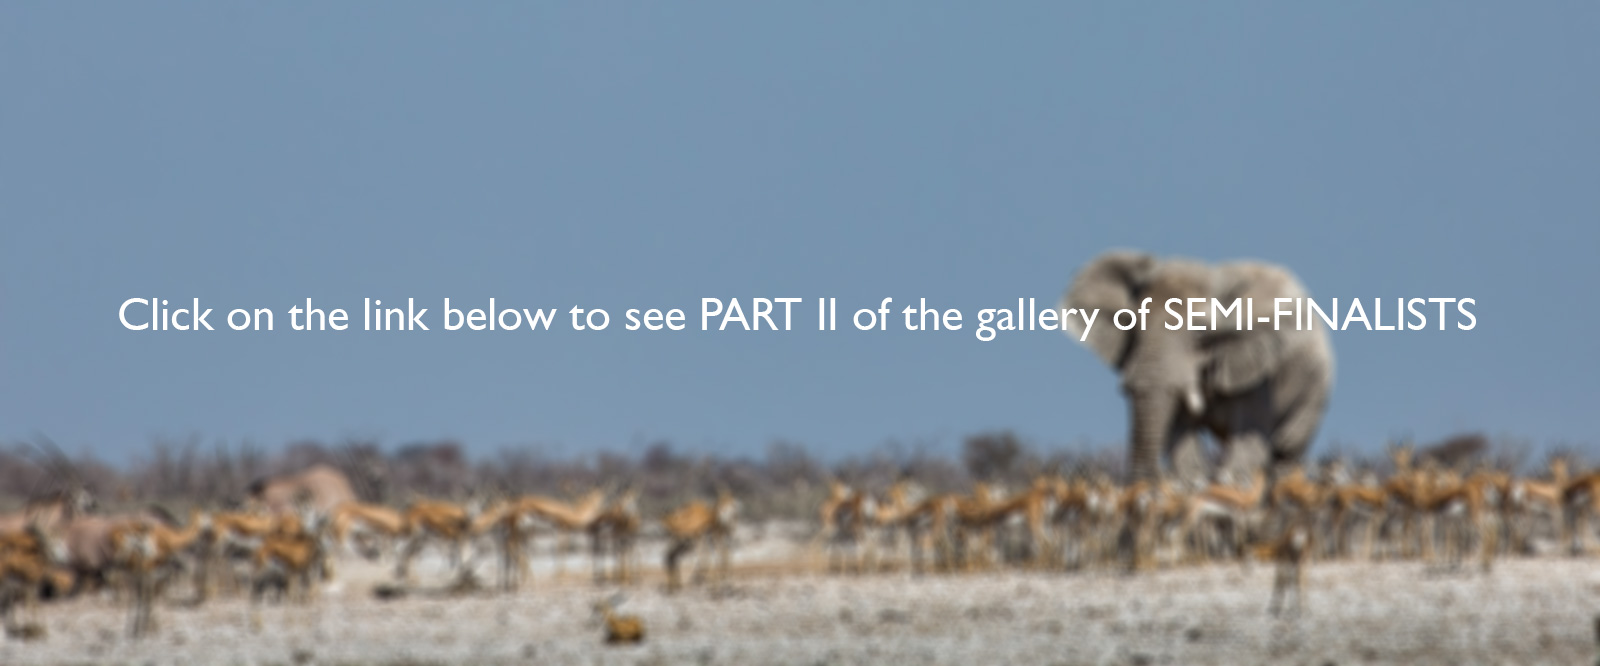 """Click <a href=""""https://magazine.africageographic.com/weekly/issue-150/photographer-year-2017-semi-finalists-part-2/""""target=""""_blank"""">here to see <b>PART II</b> of the gallery</a>"""